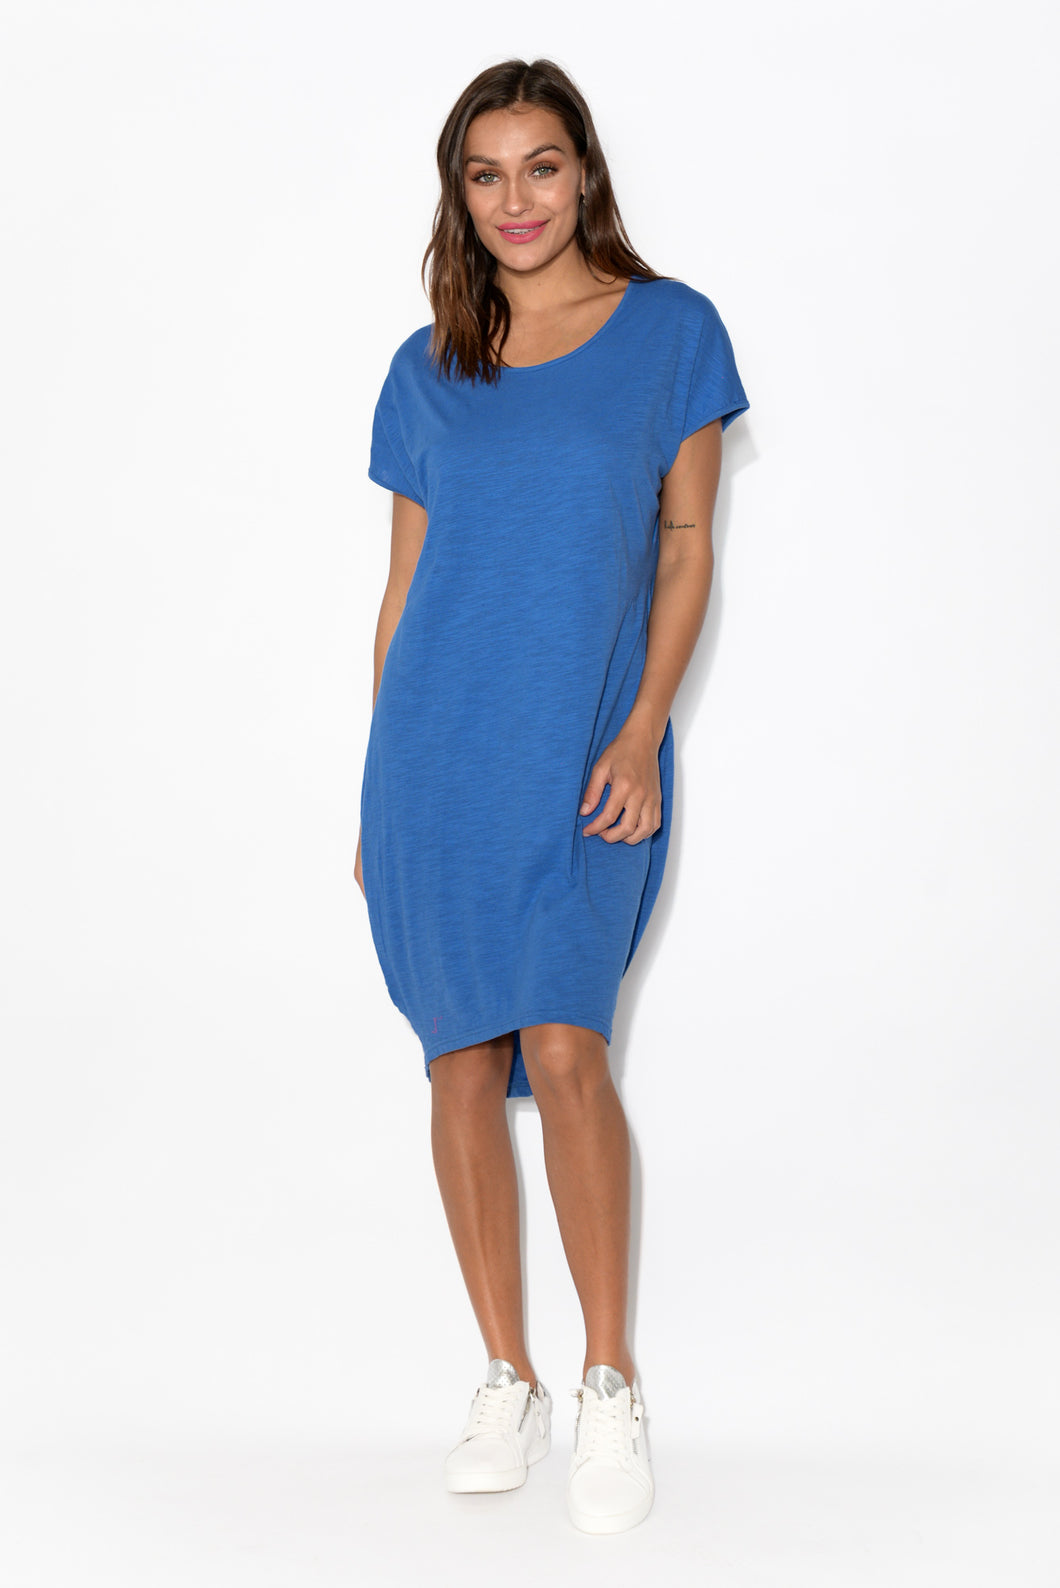 Santos Blue Cotton Slub Tulip Dress